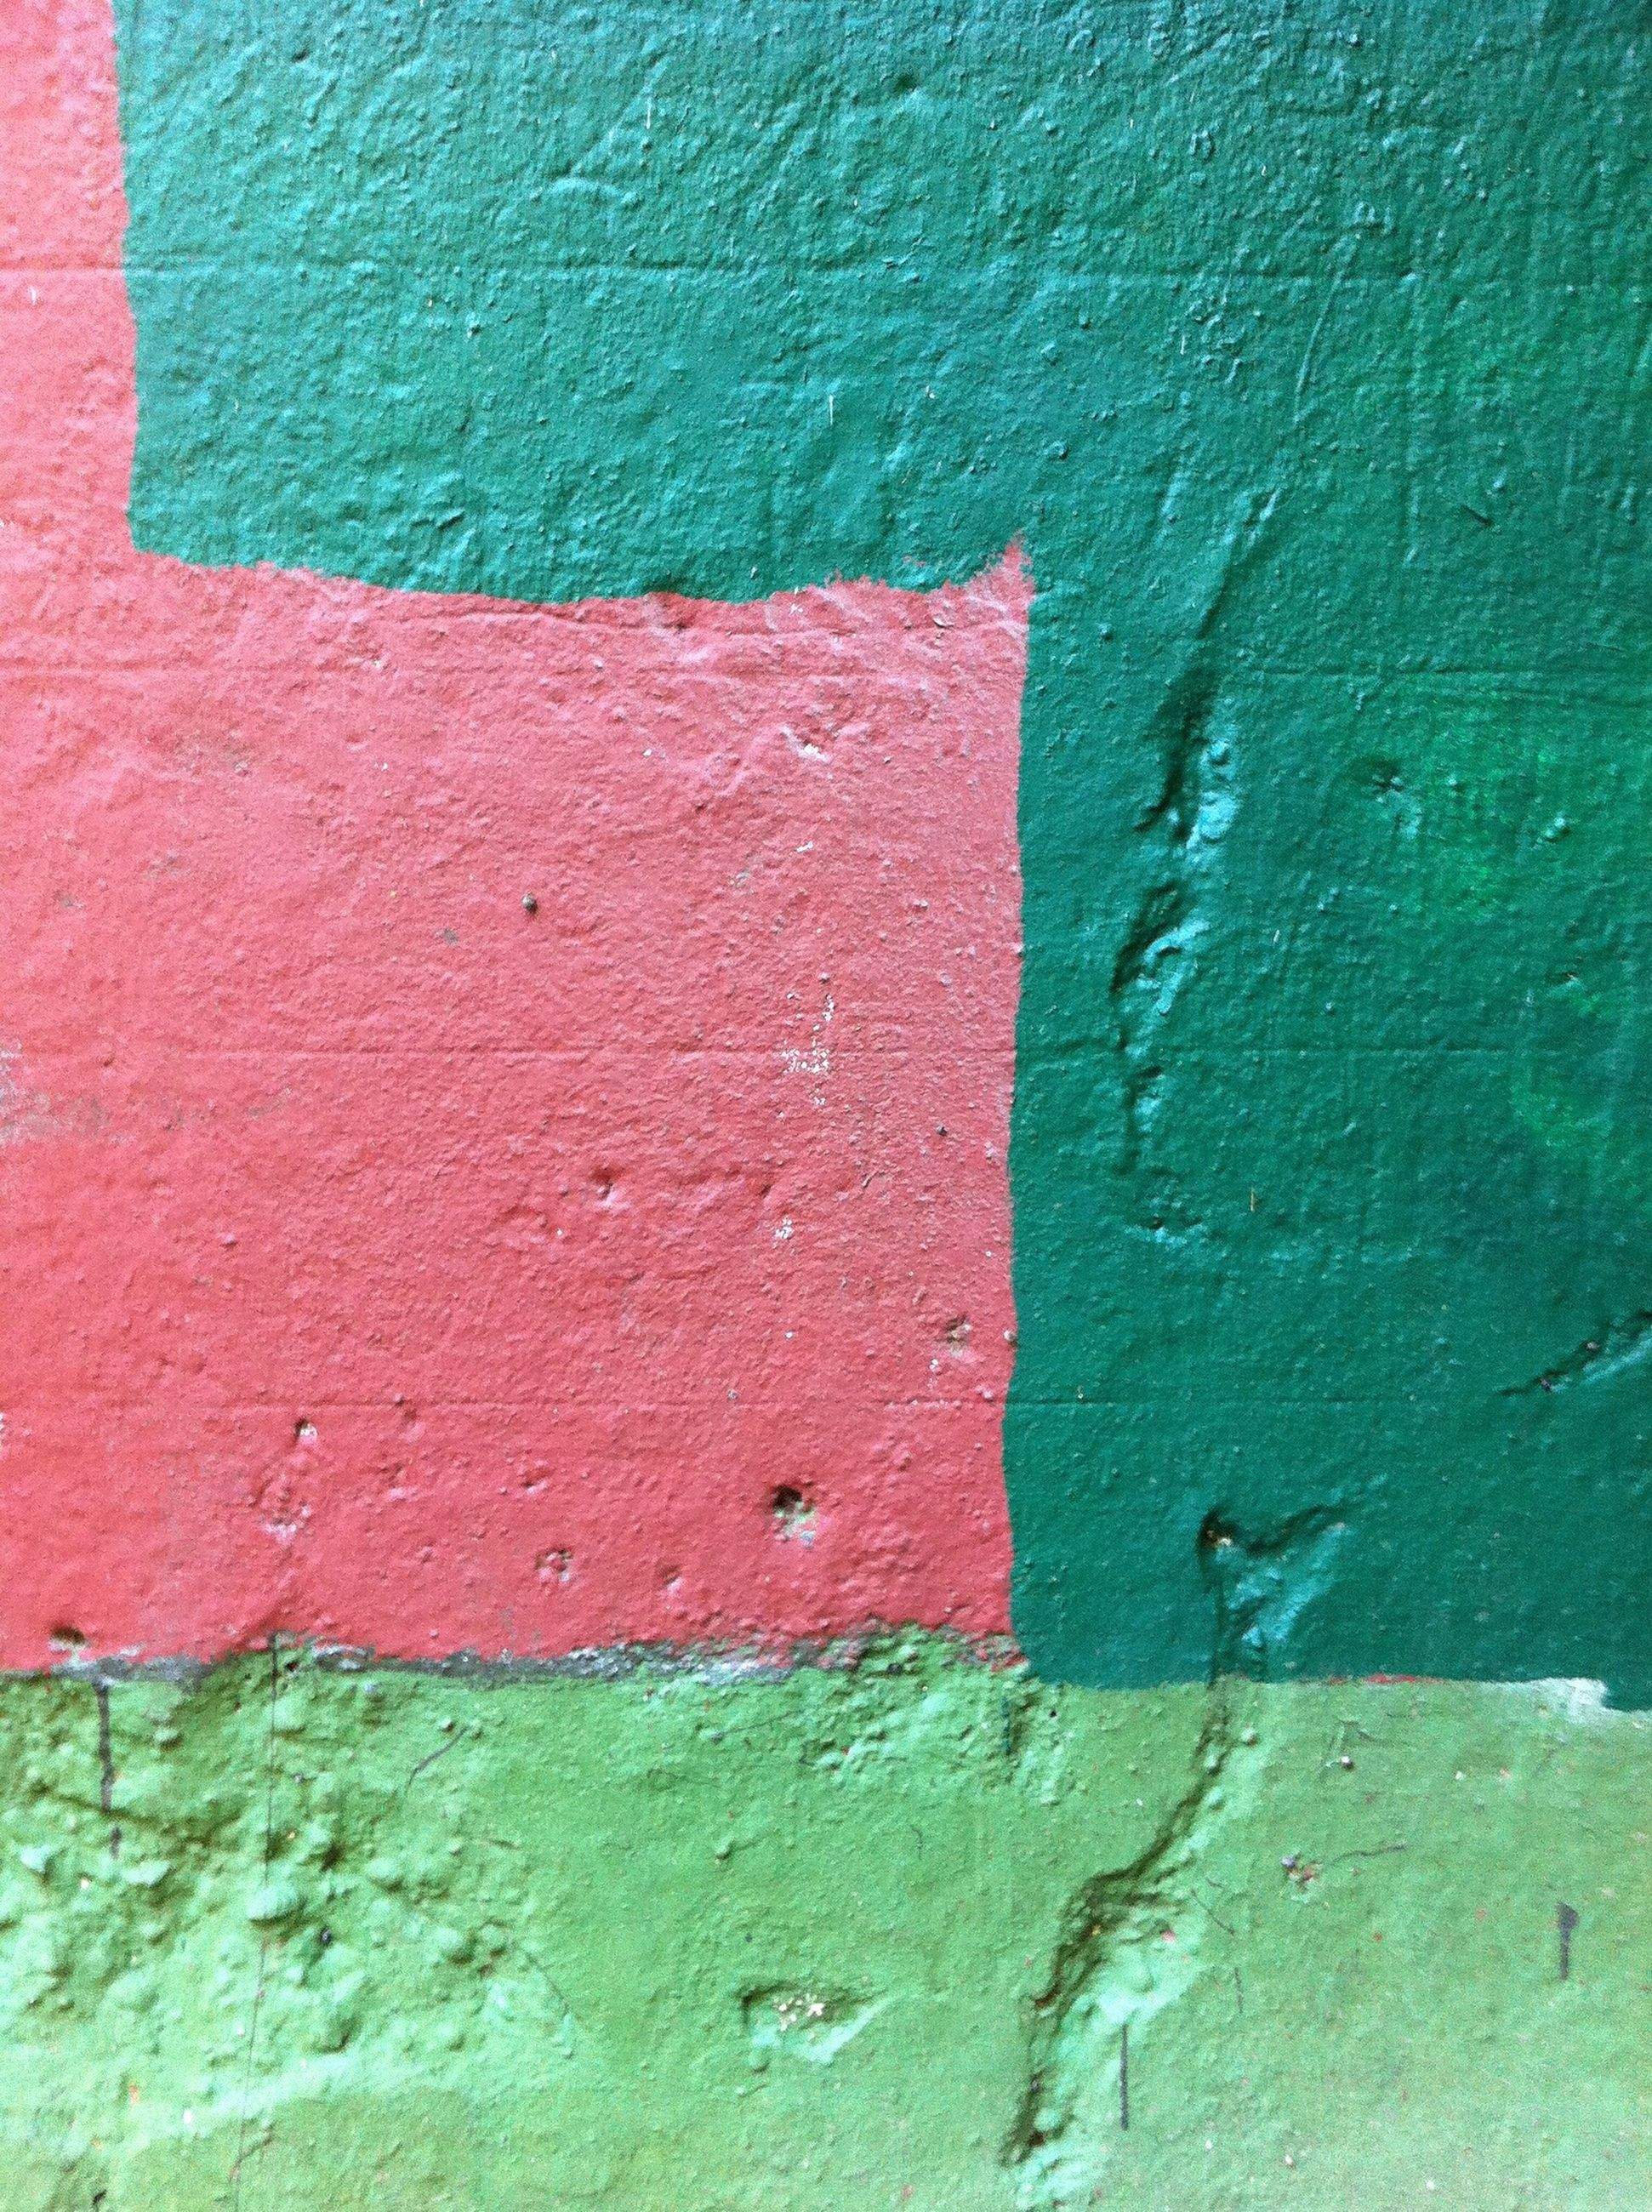 built structure, architecture, wall - building feature, weathered, textured, full frame, wall, building exterior, backgrounds, paint, old, close-up, red, door, peeling off, blue, pattern, peeling, damaged, green color